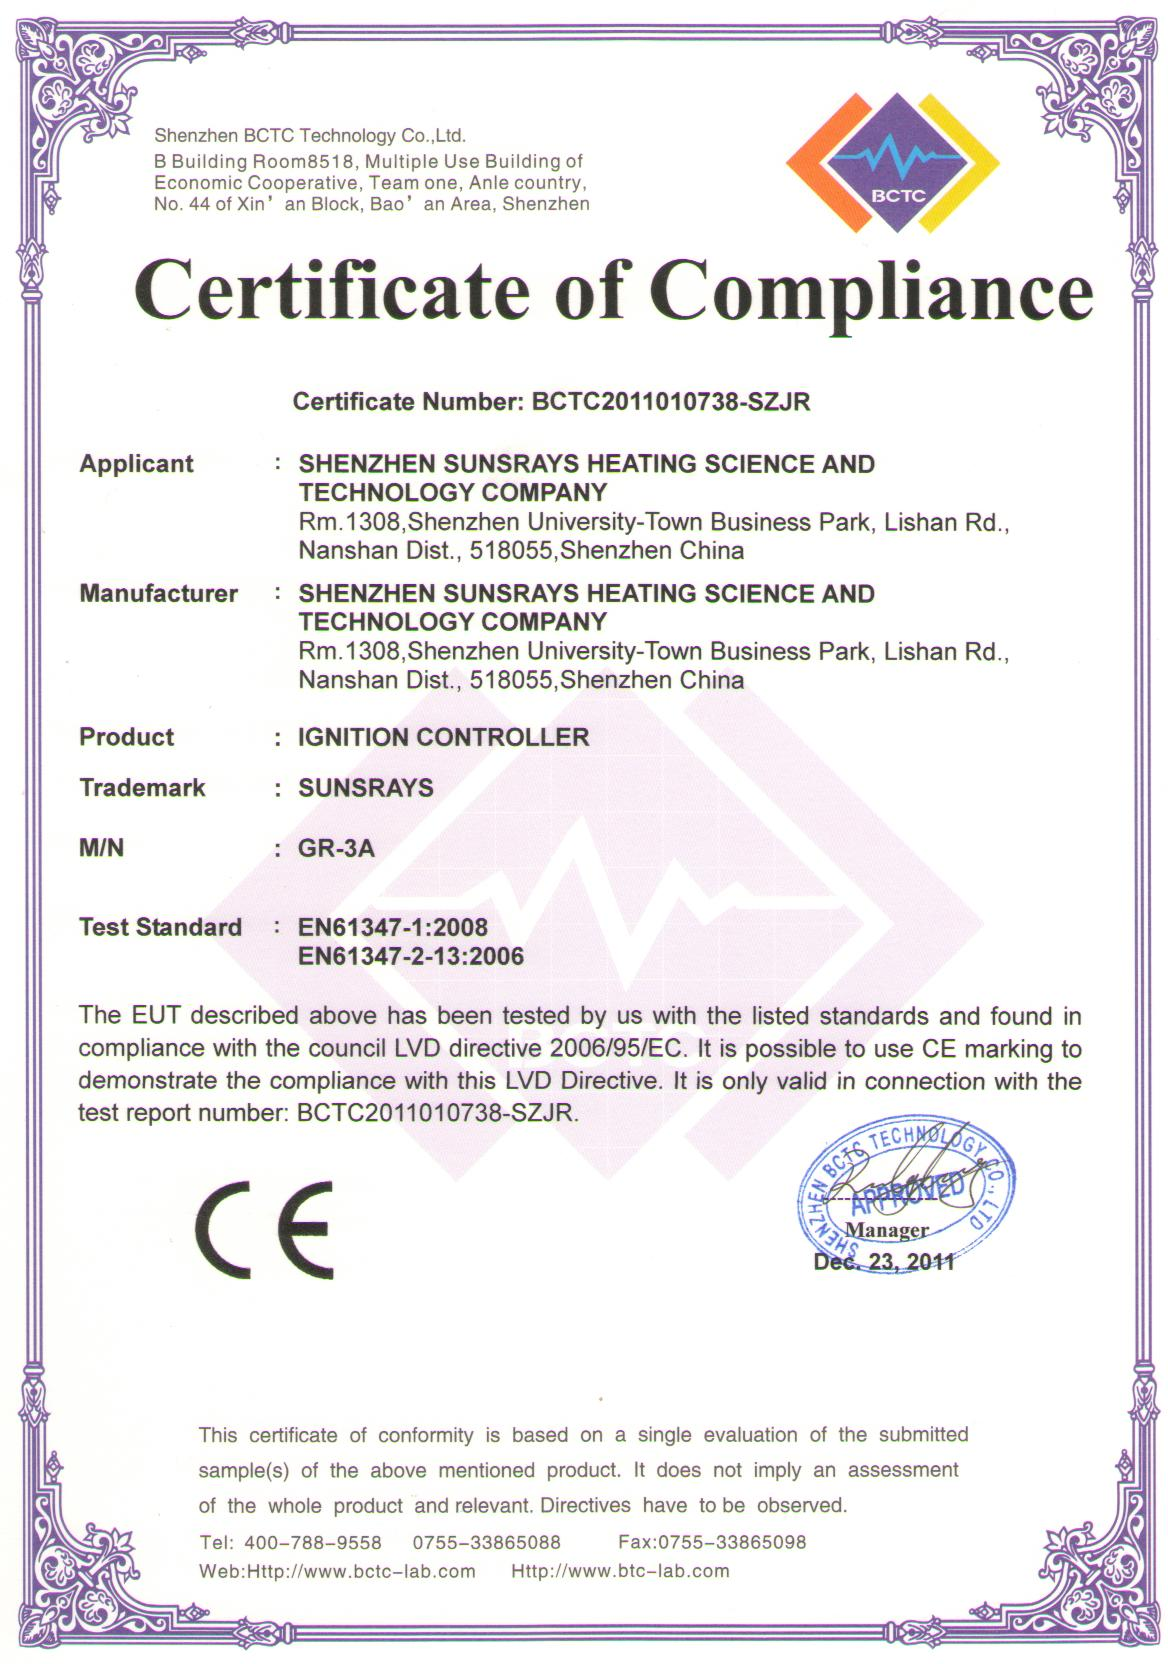 Elegant image of certificate of compliance template business cards and resume for Certificate of compliance template